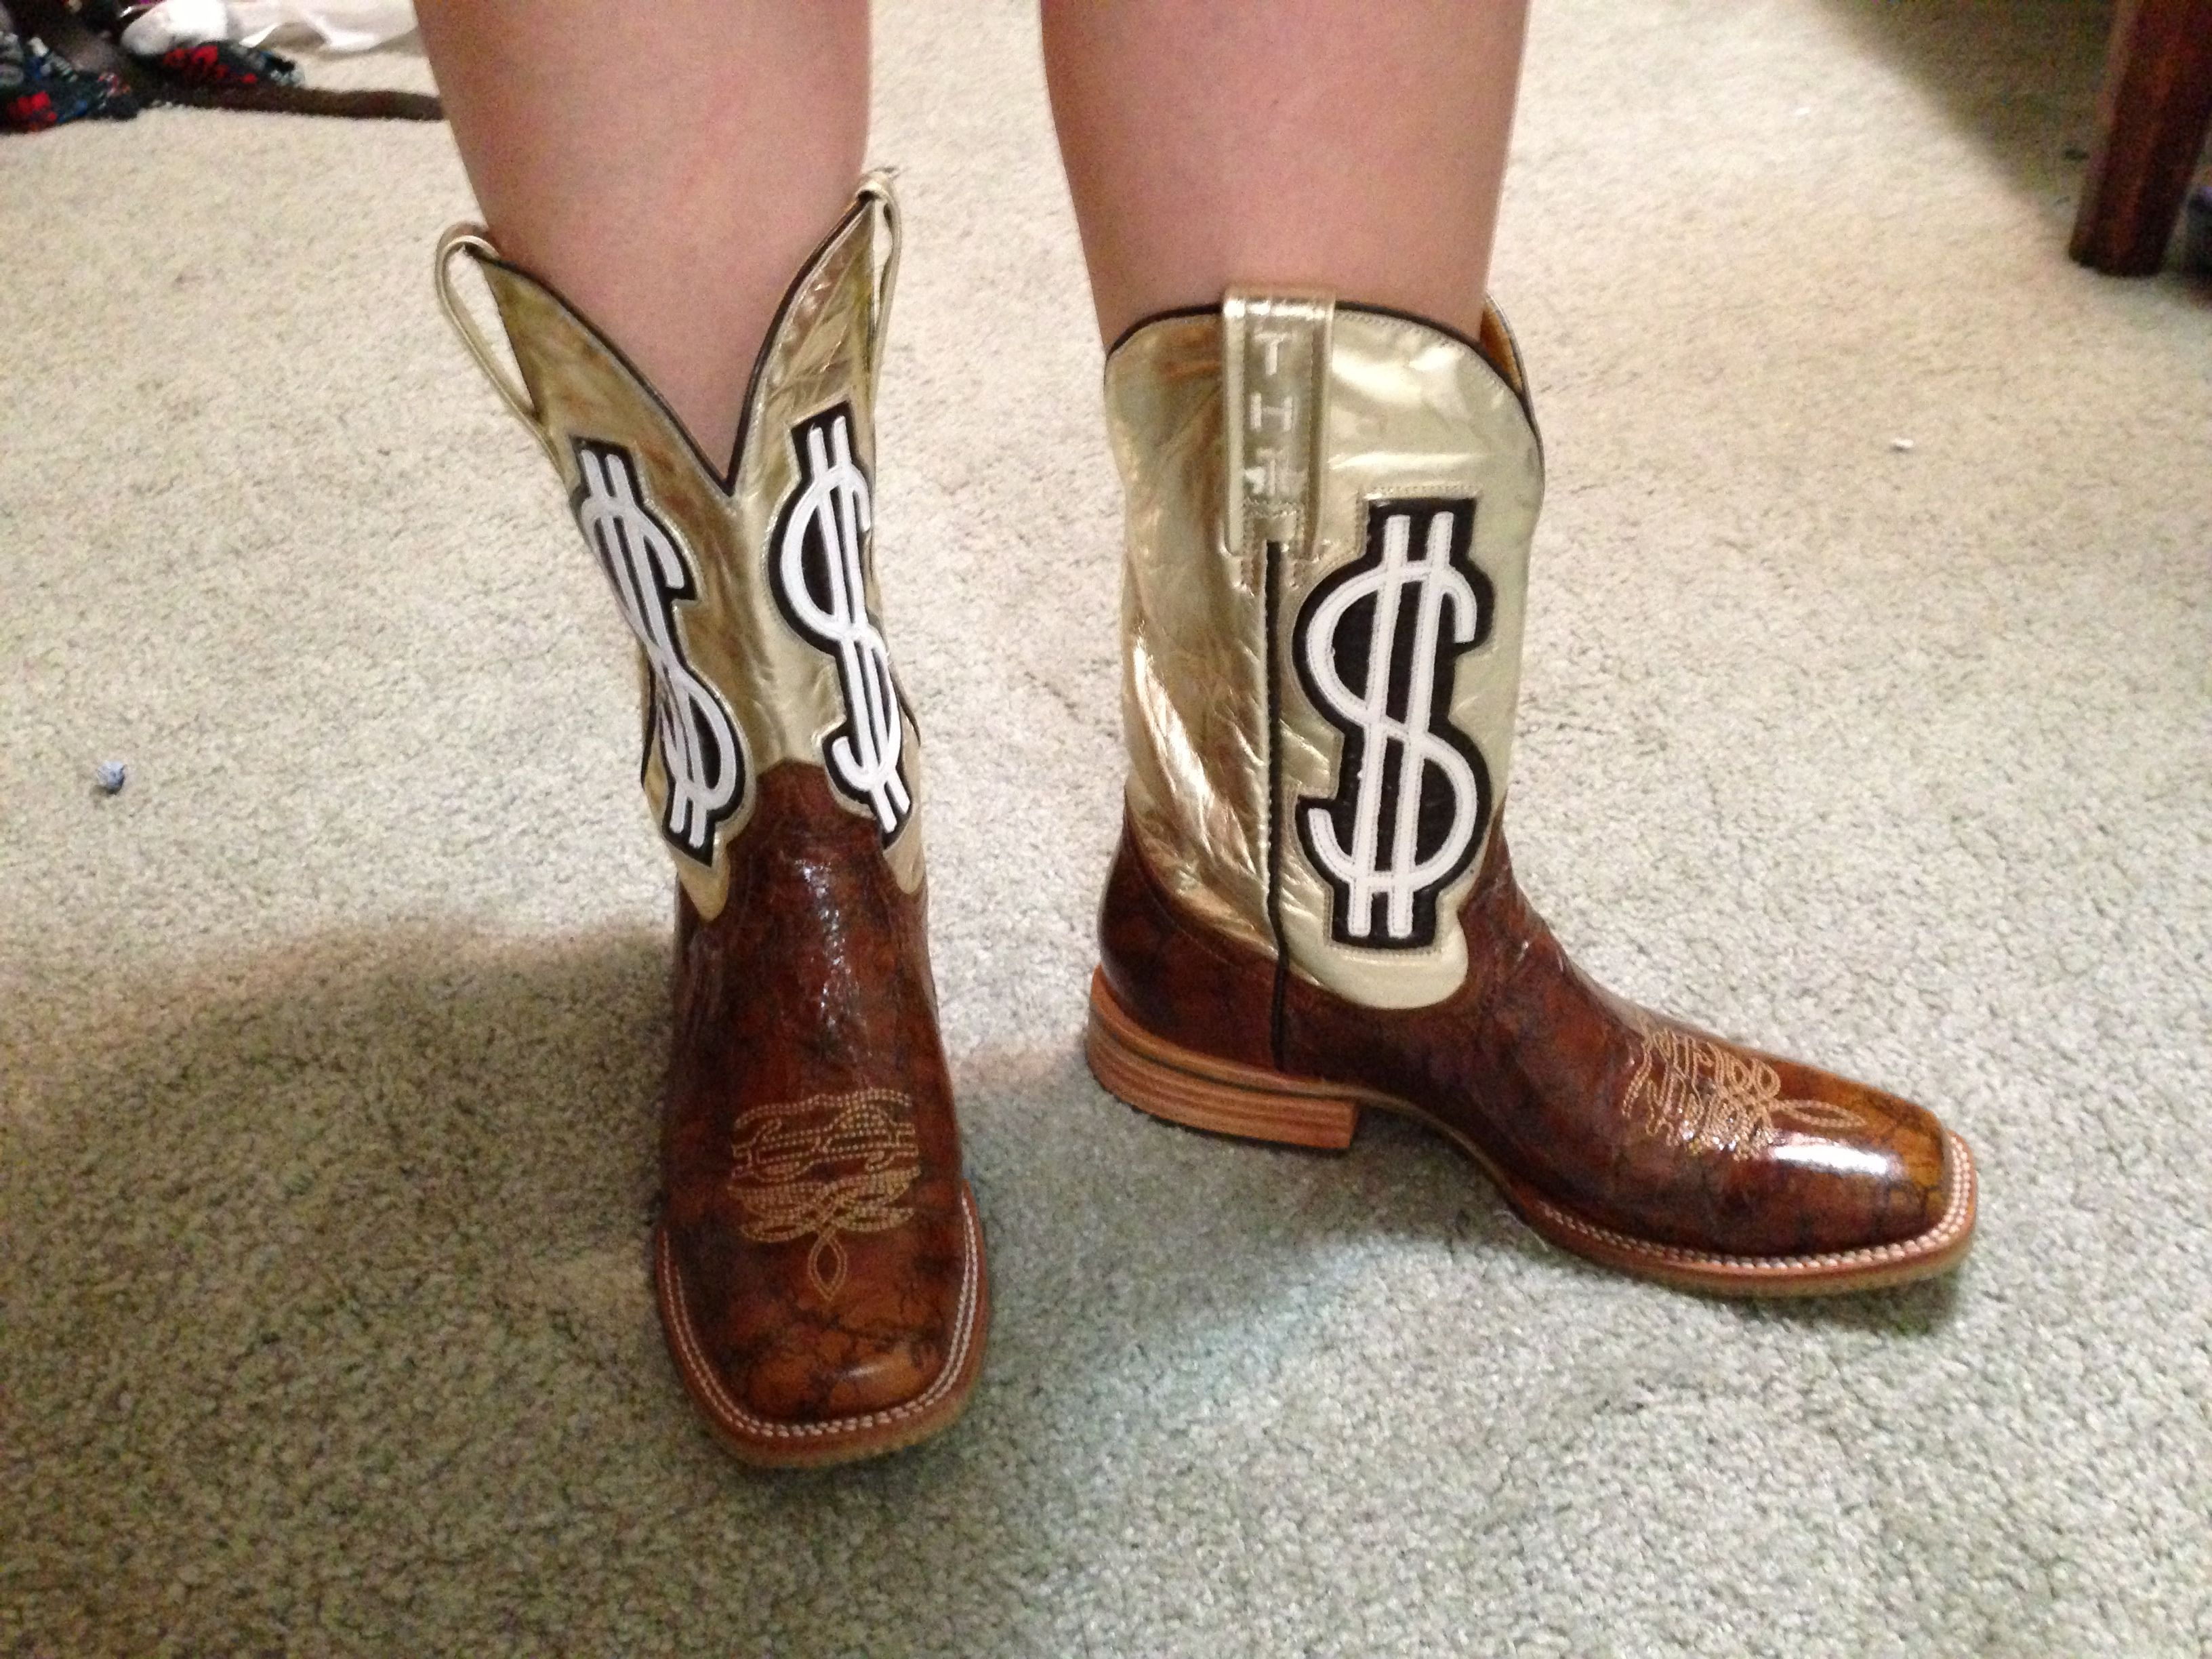 f0052caf345561 Tin haul gold digger boots! Perfect for the white trash bash ...